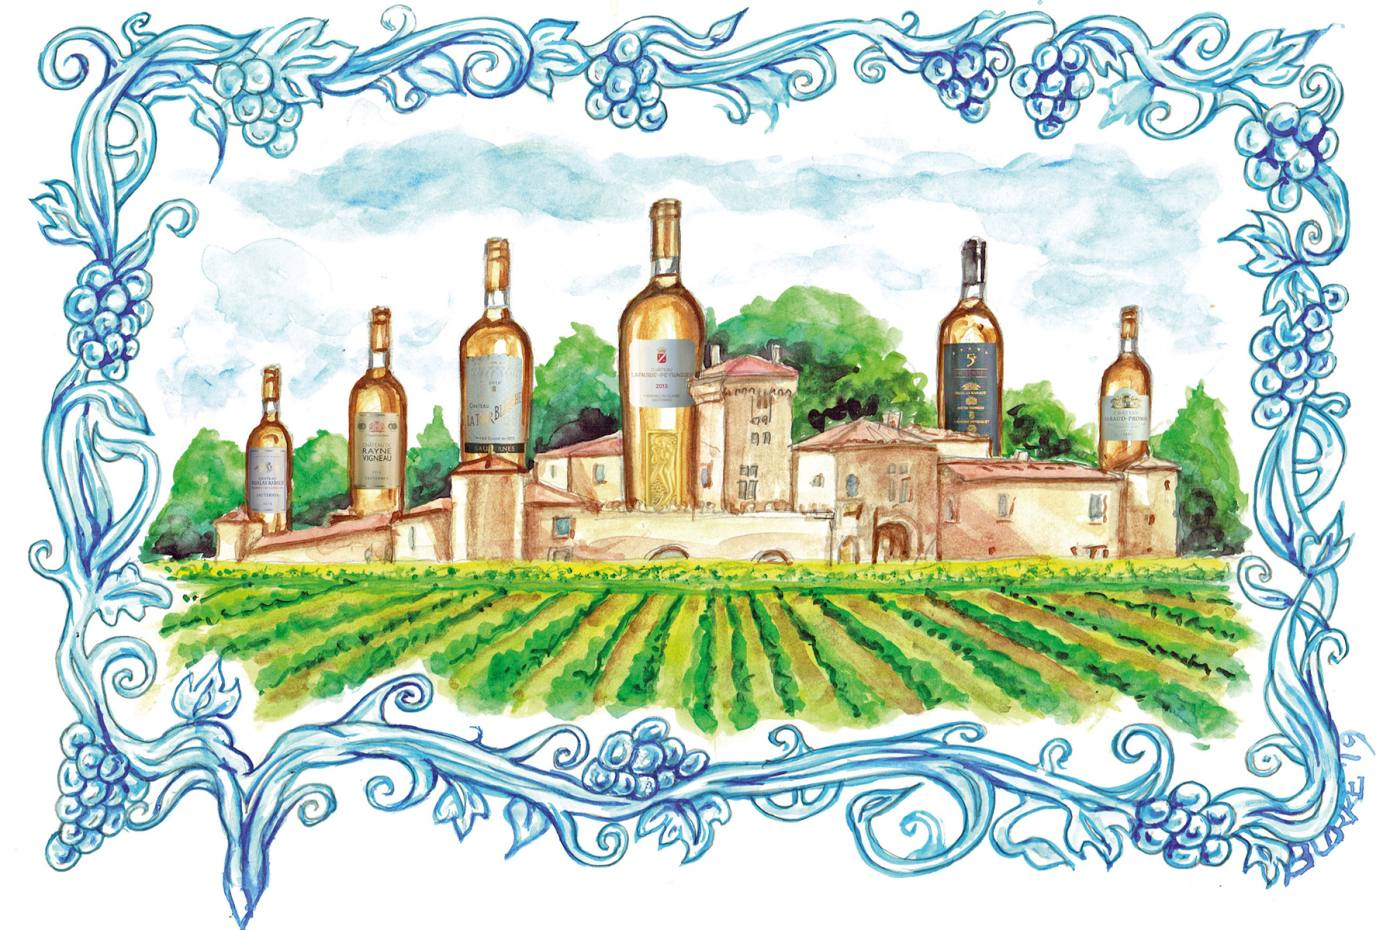 The sweet new success of sauternes